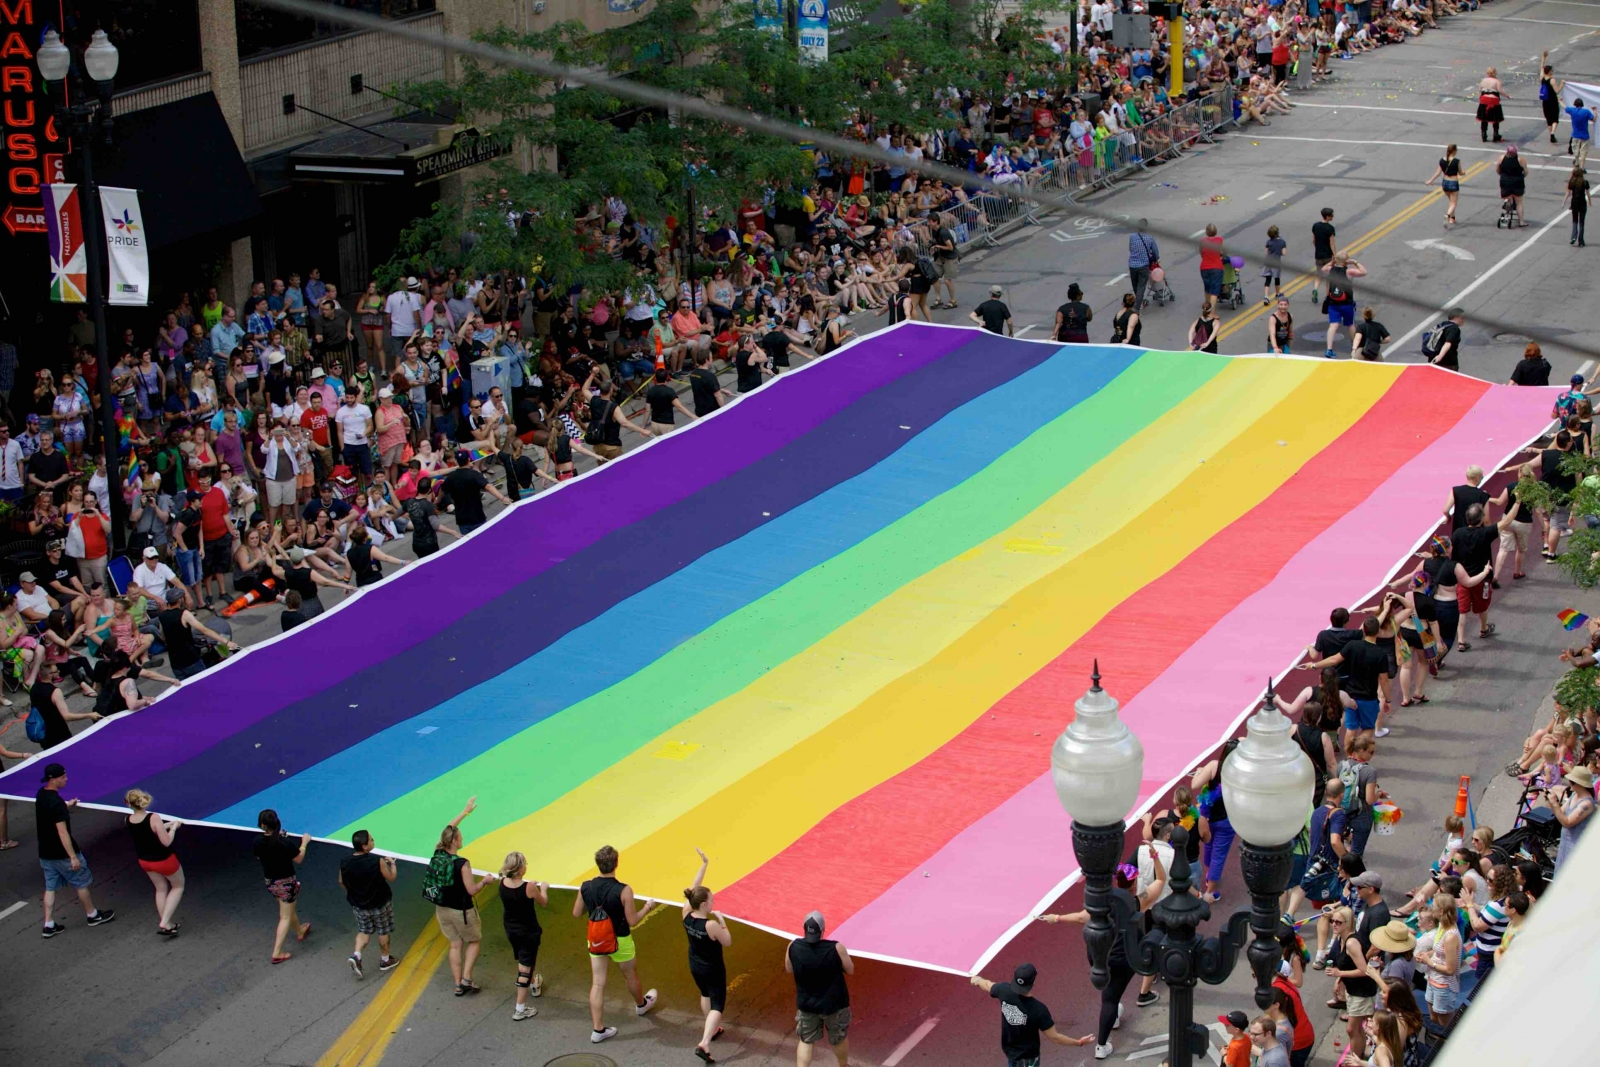 A photo of the Twin Cities Pride parade in 2015. A huge rainbow flag is stretched out across the street, held by dozens of marchers. Photo by RJL Photography.